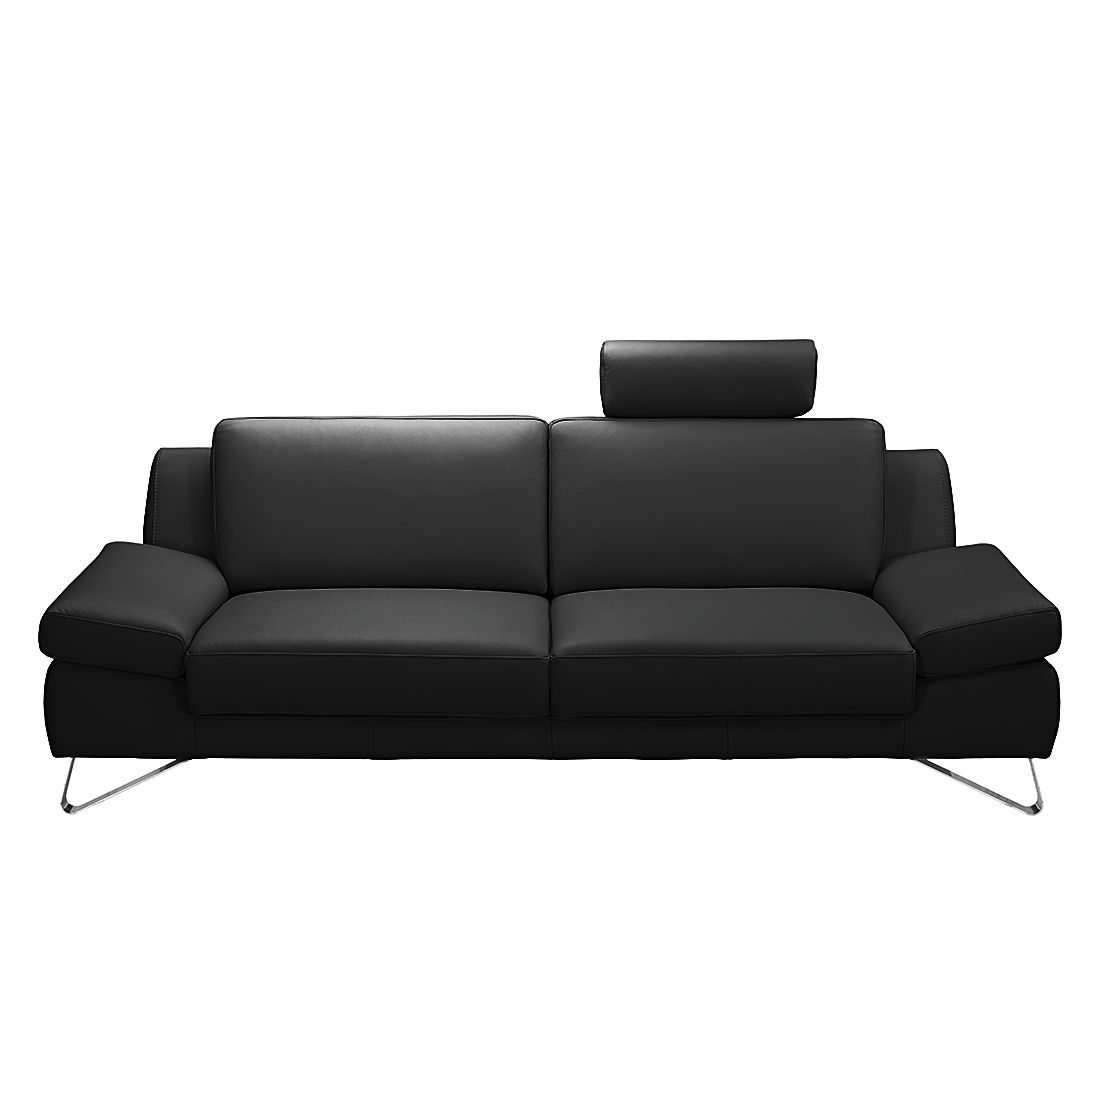 sofa silvano von loftscape in schwarz mit kopfst tze nur 899 99 cherry m bel home24. Black Bedroom Furniture Sets. Home Design Ideas